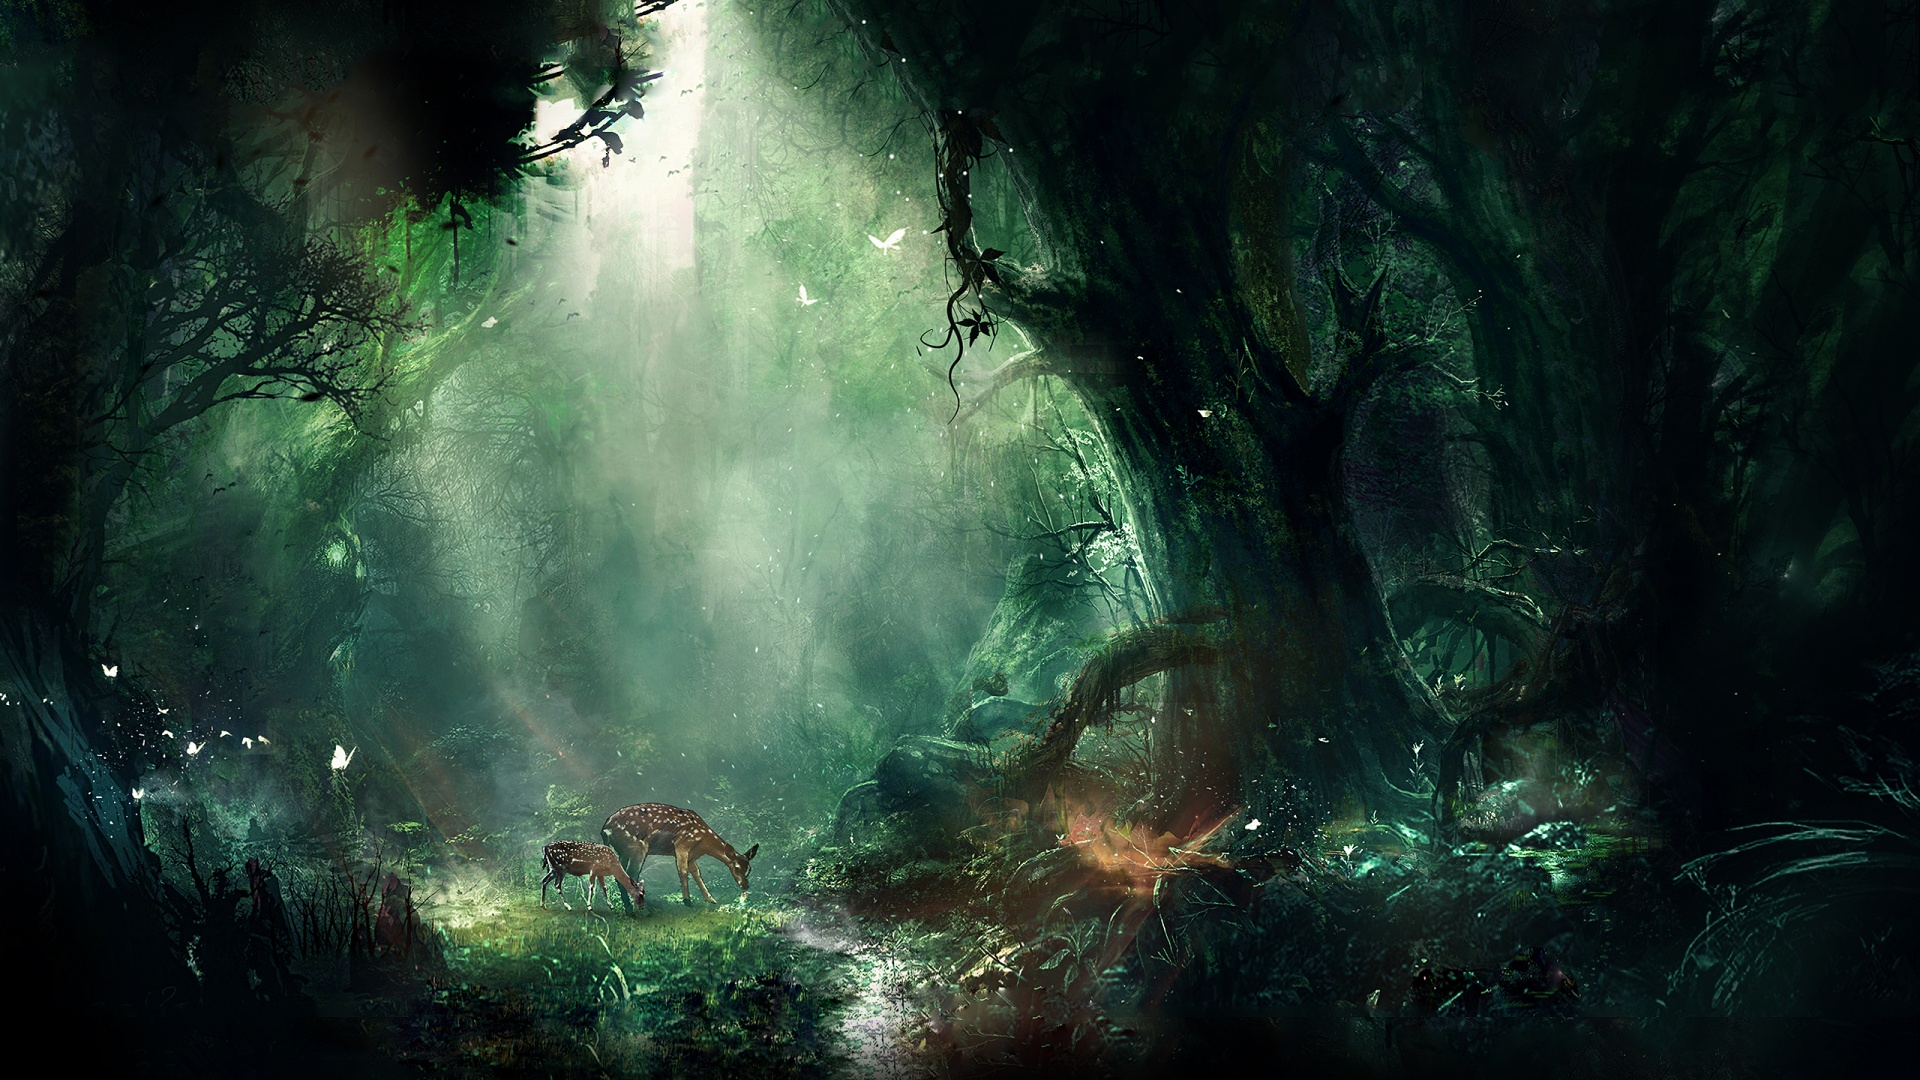 bambi jungle wallpapers in jpg format for free download